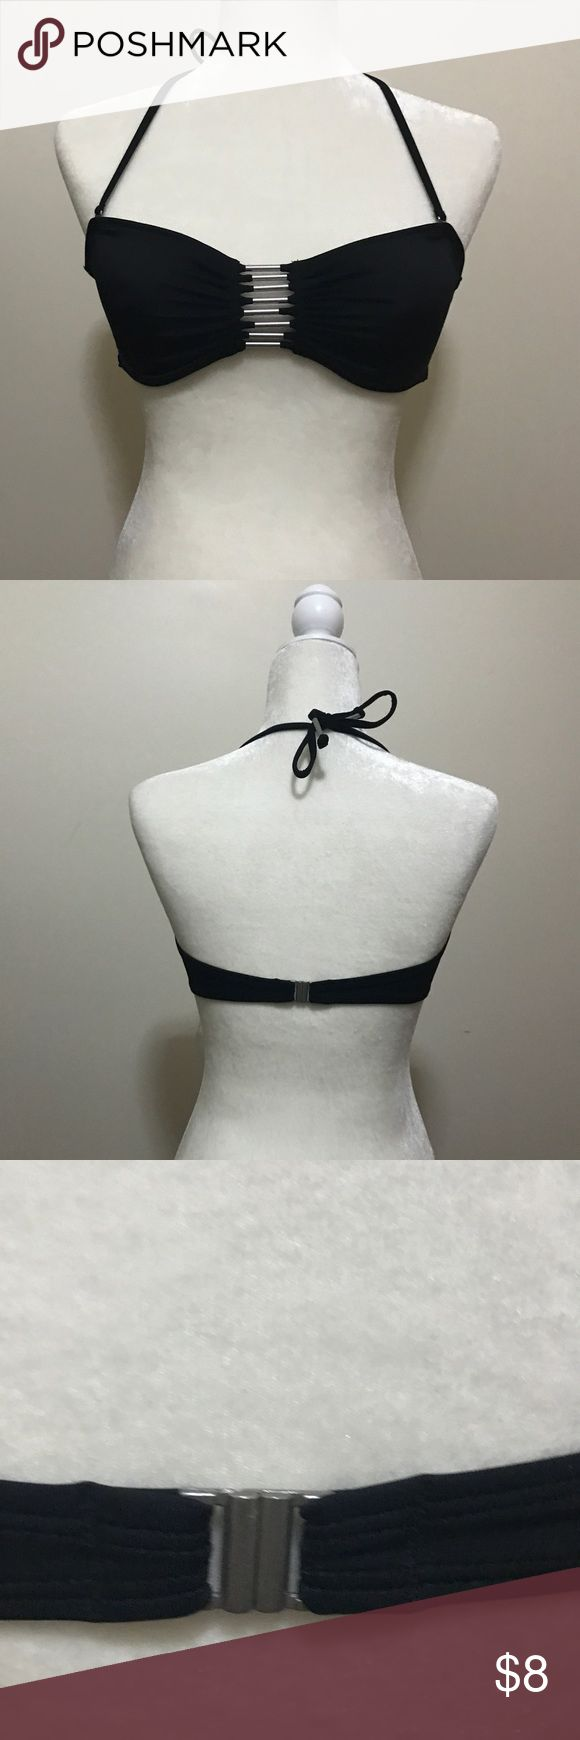 H&m bandeau bikini top New with out tag never worn , silver hardware, removable straps H&M Swim Bikinis